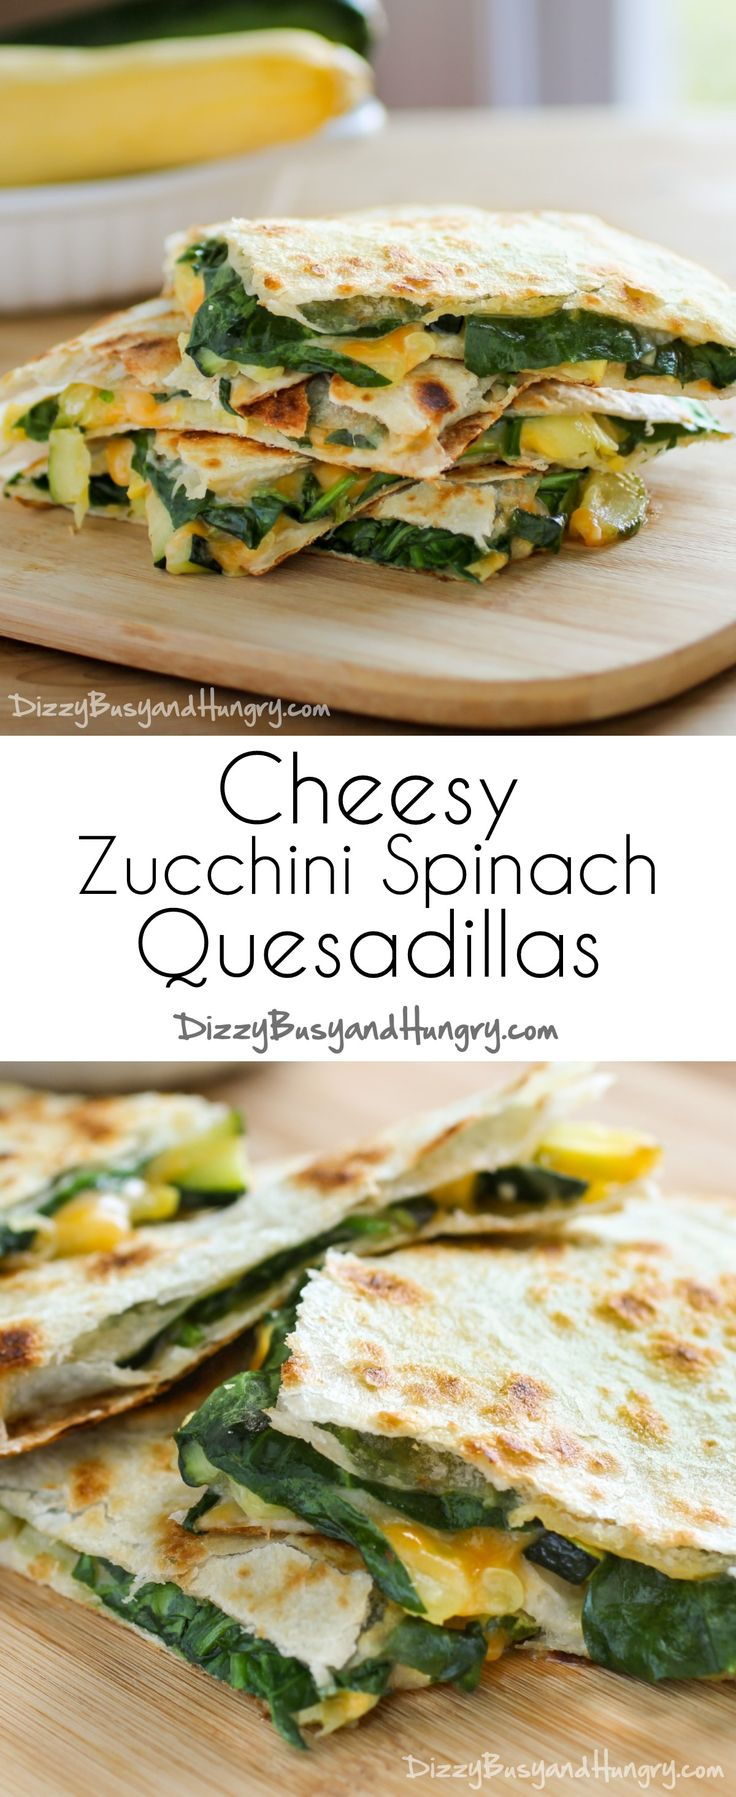 Blue apron kale quesadilla